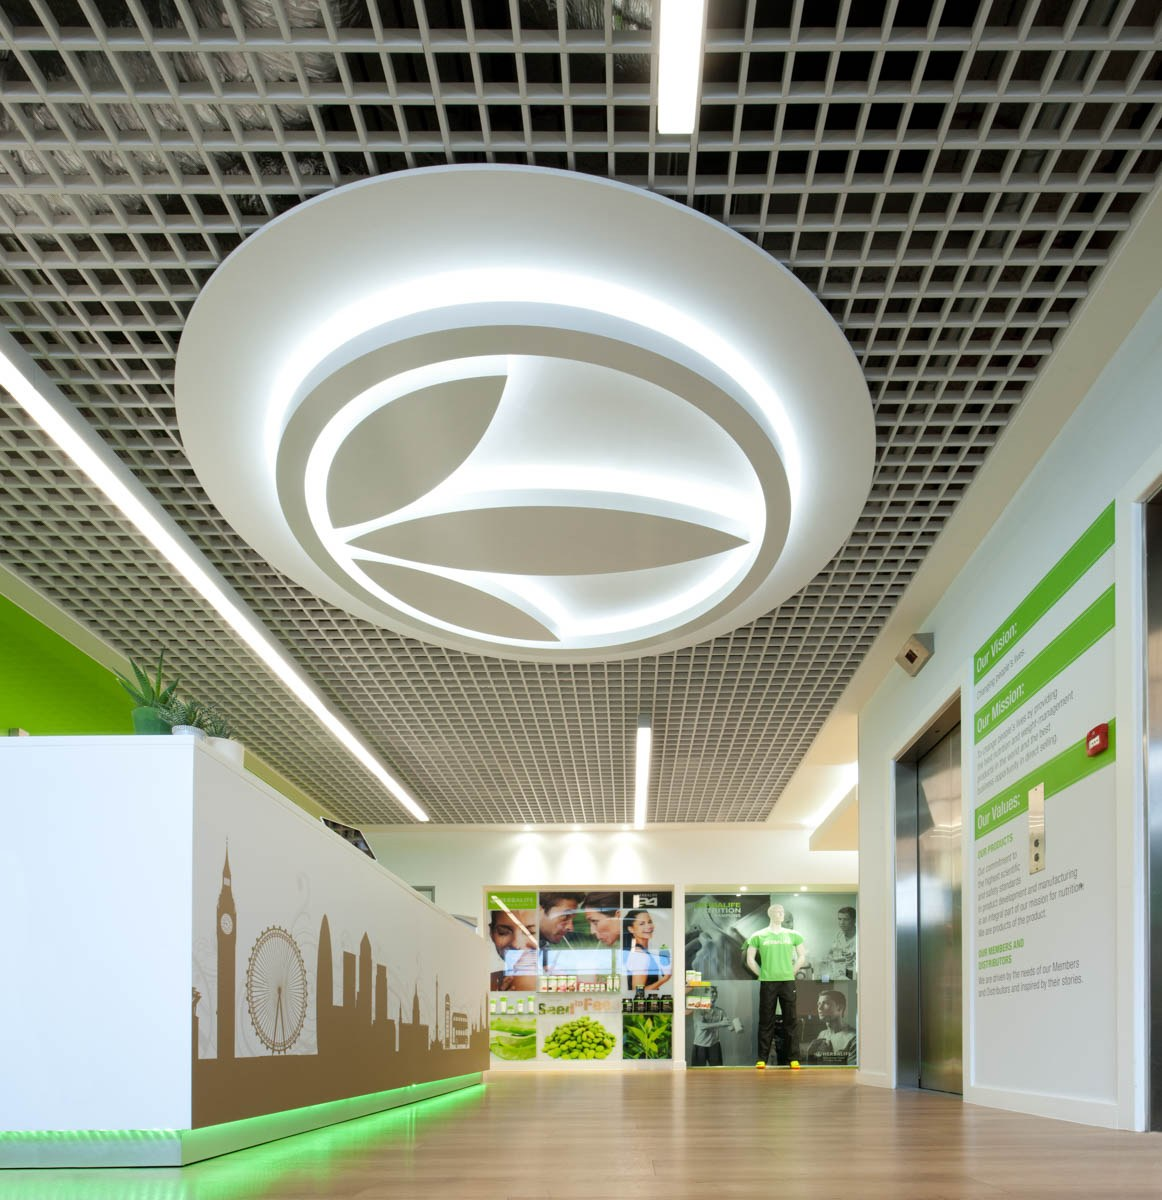 Herbalife ceiling detail in office fit out